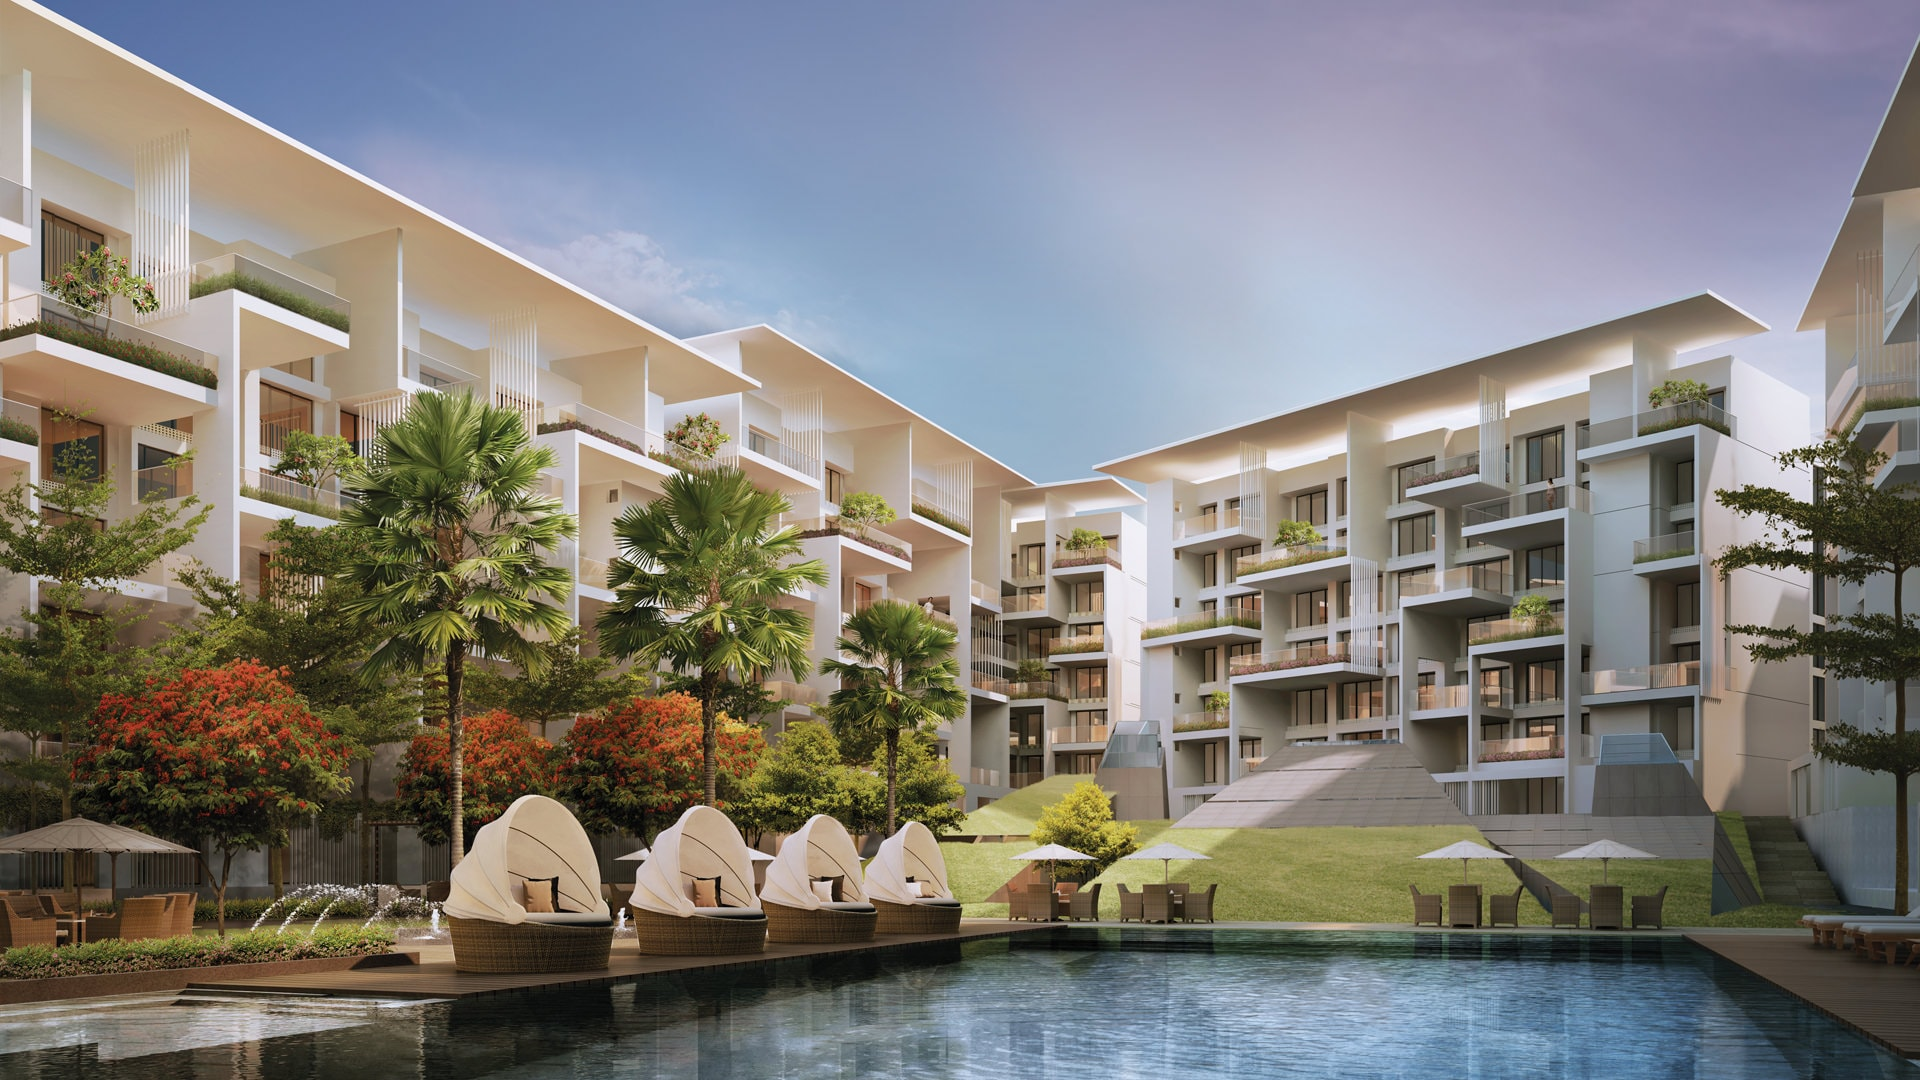 Rohan Kritika - 2 BHK, 3 BHK and 4 BHK Residential Apartments in